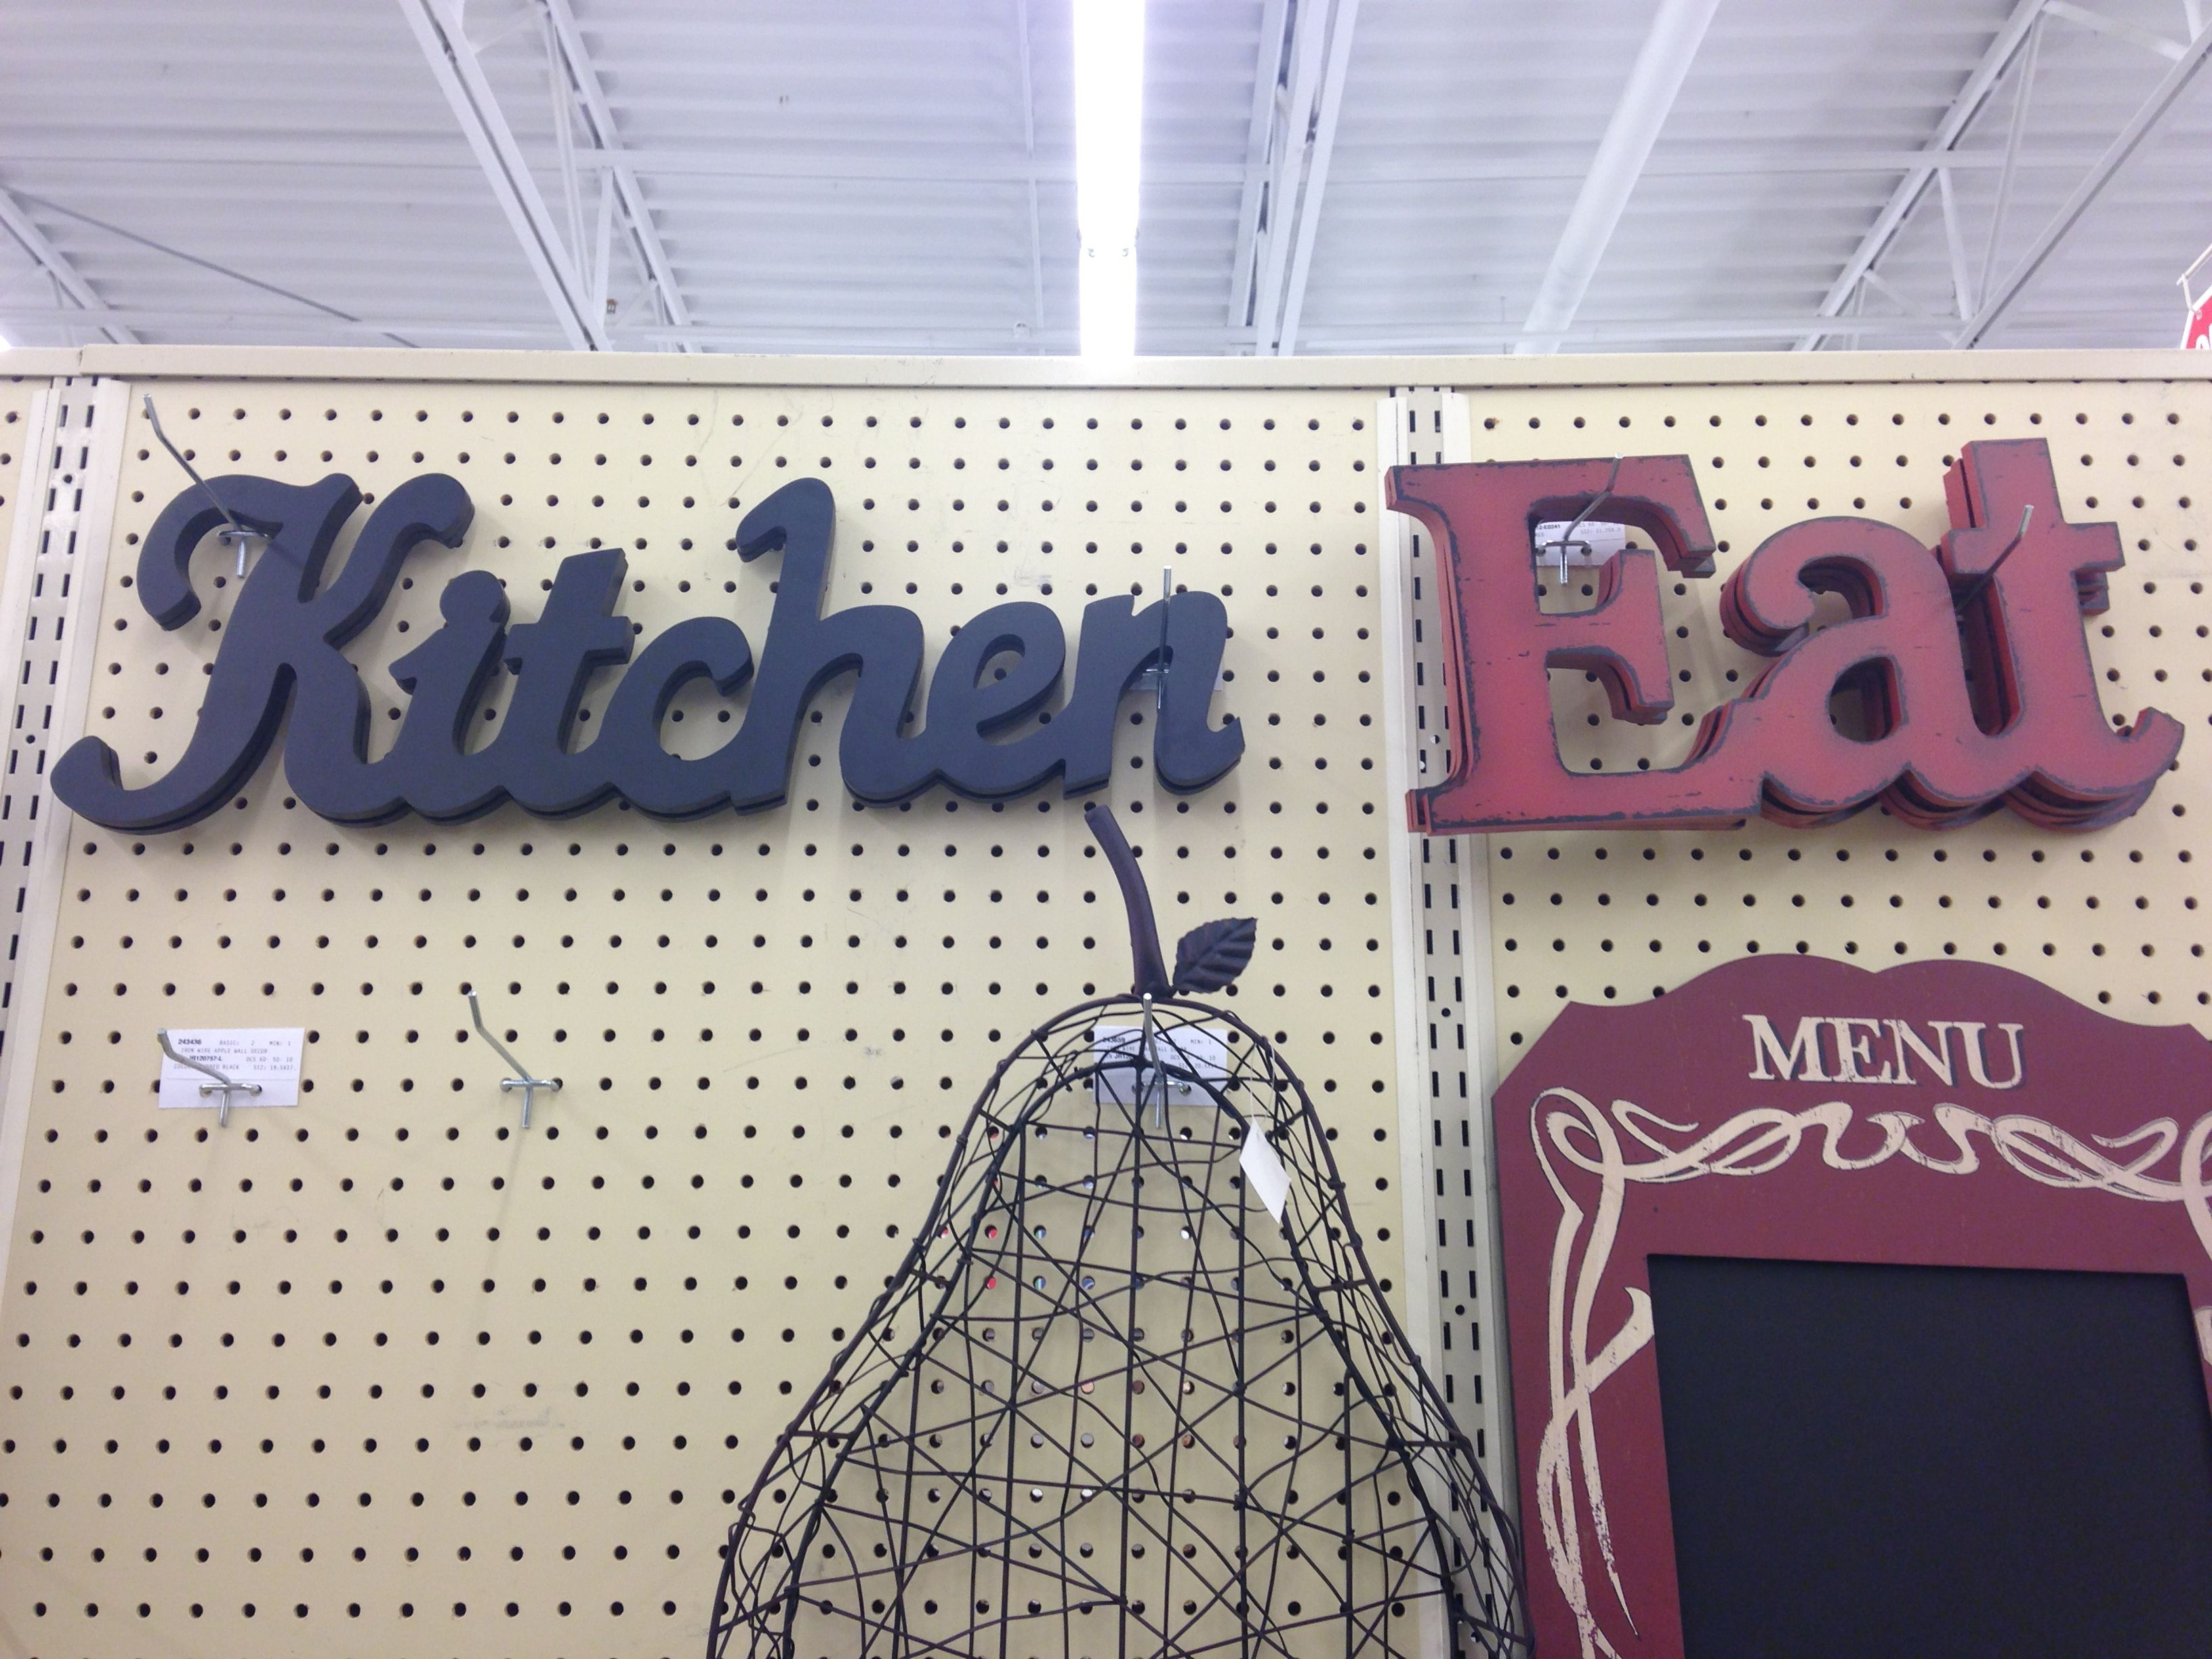 Hobby lobby kitchen signs | Kitchen signs, Home ...